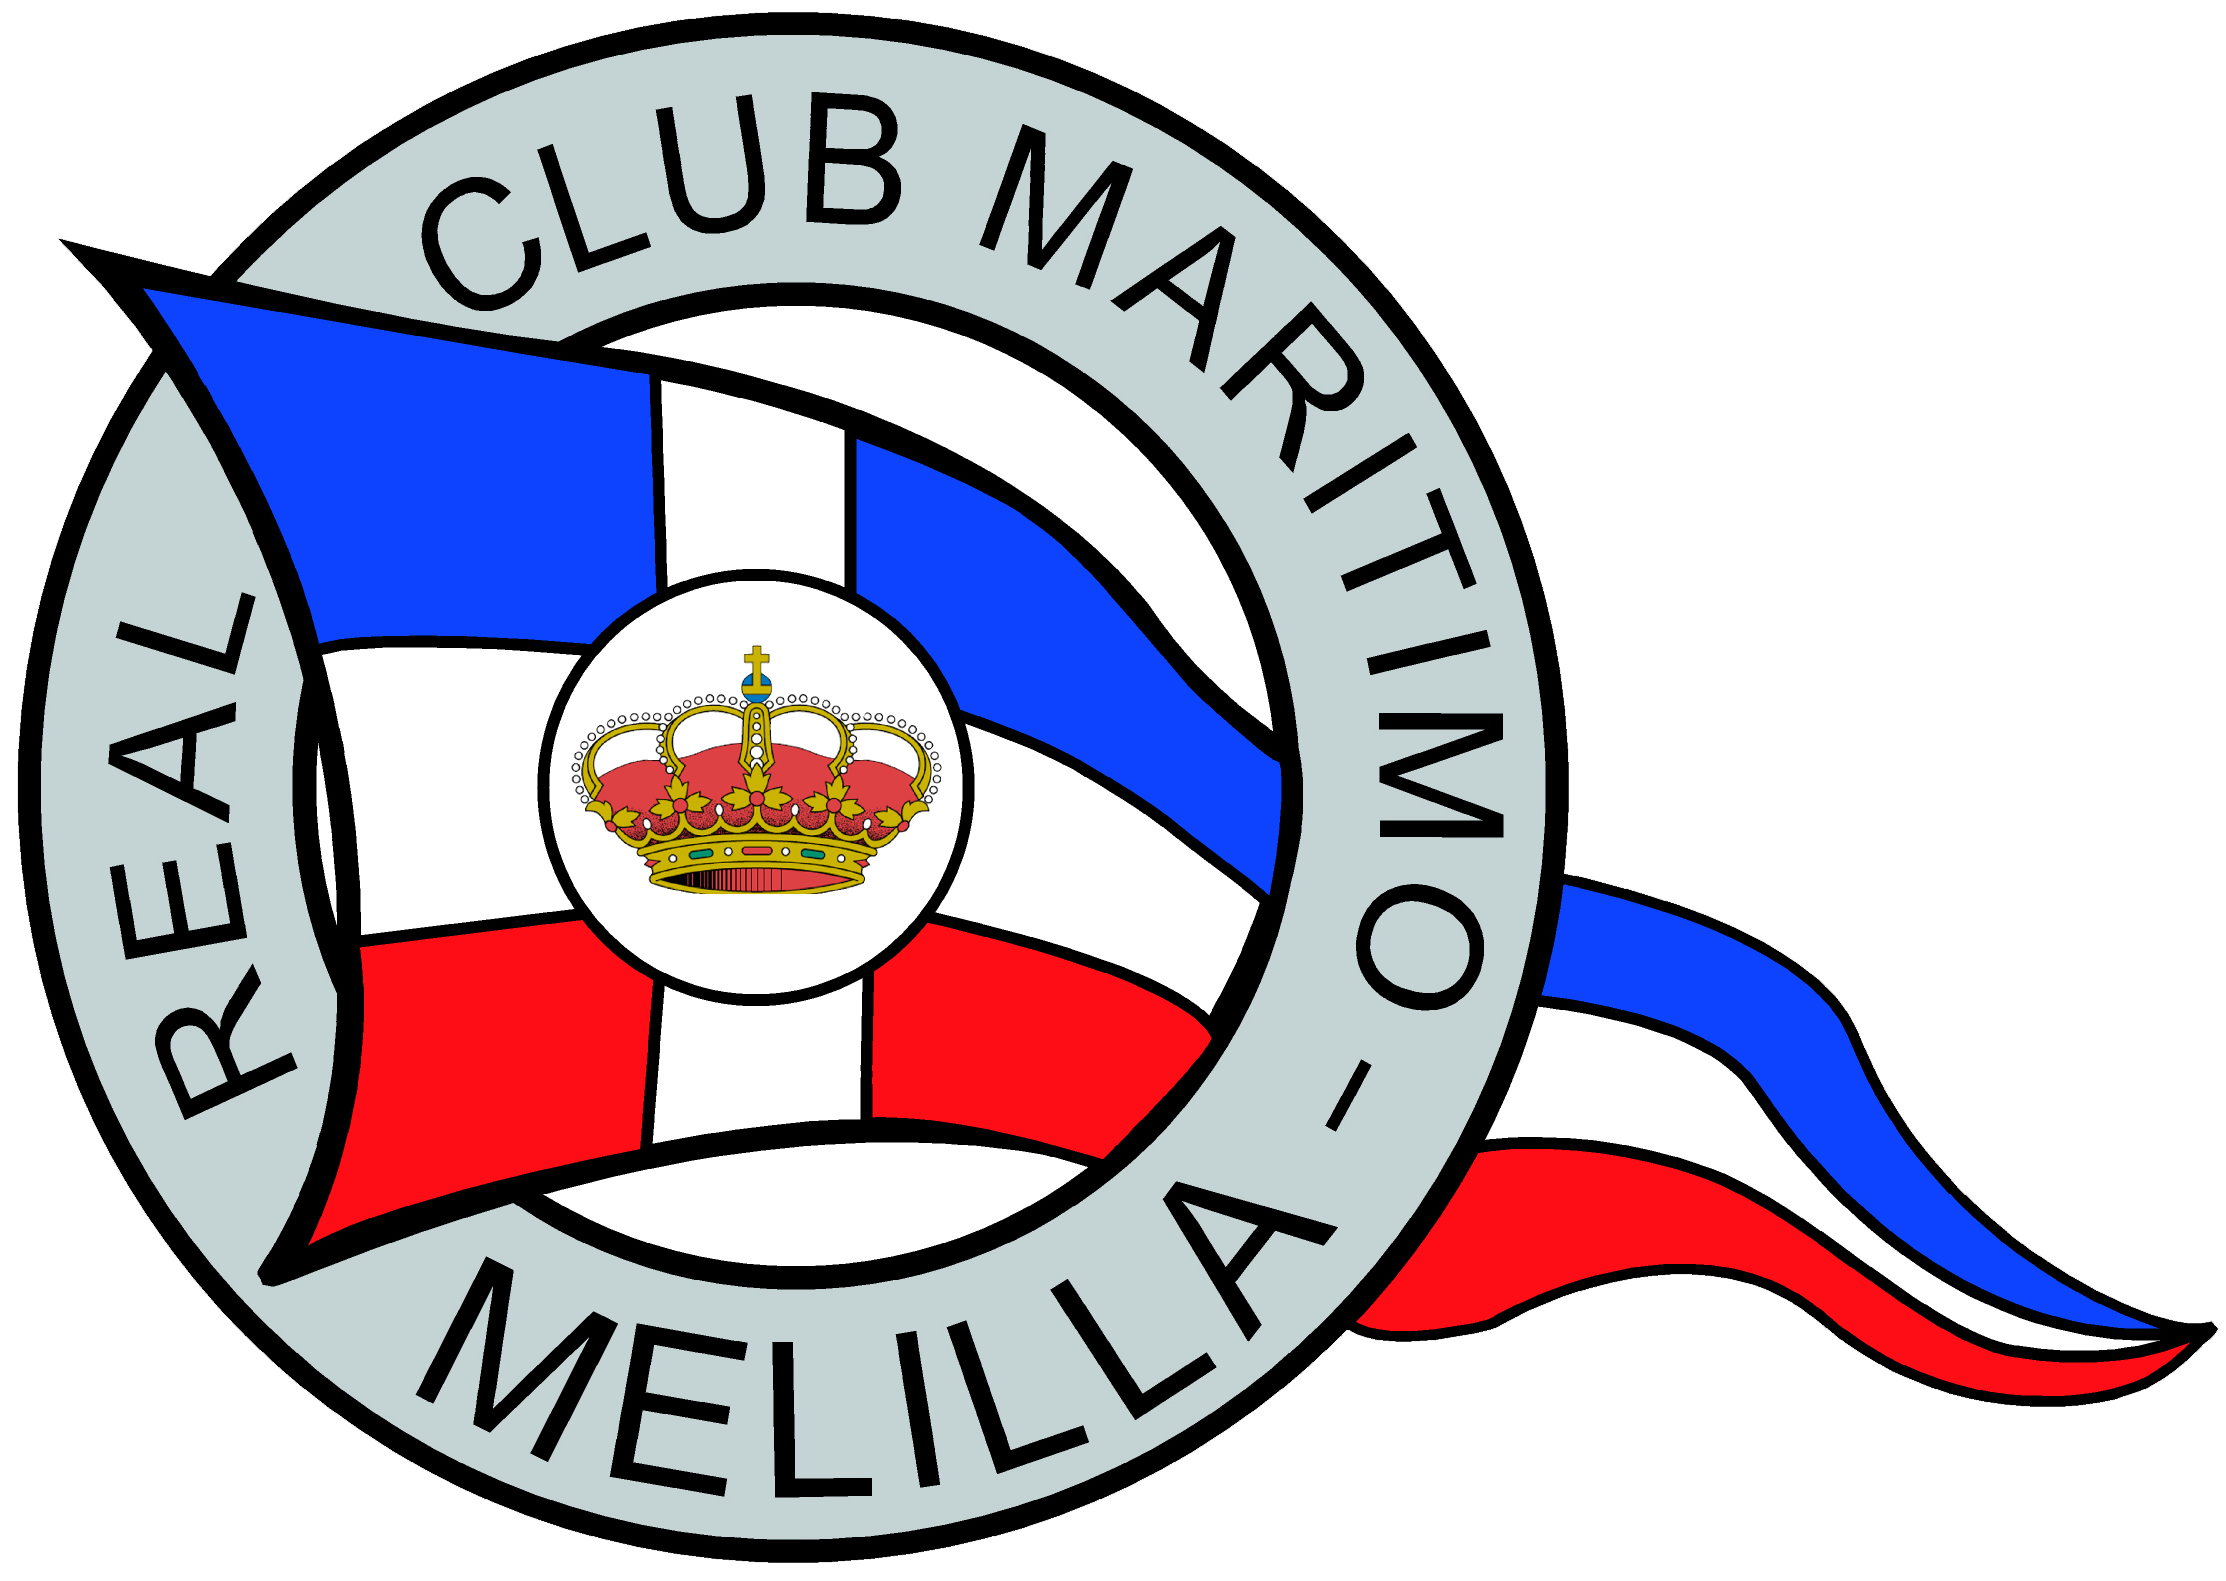 Real Club Marítimo de Melilla